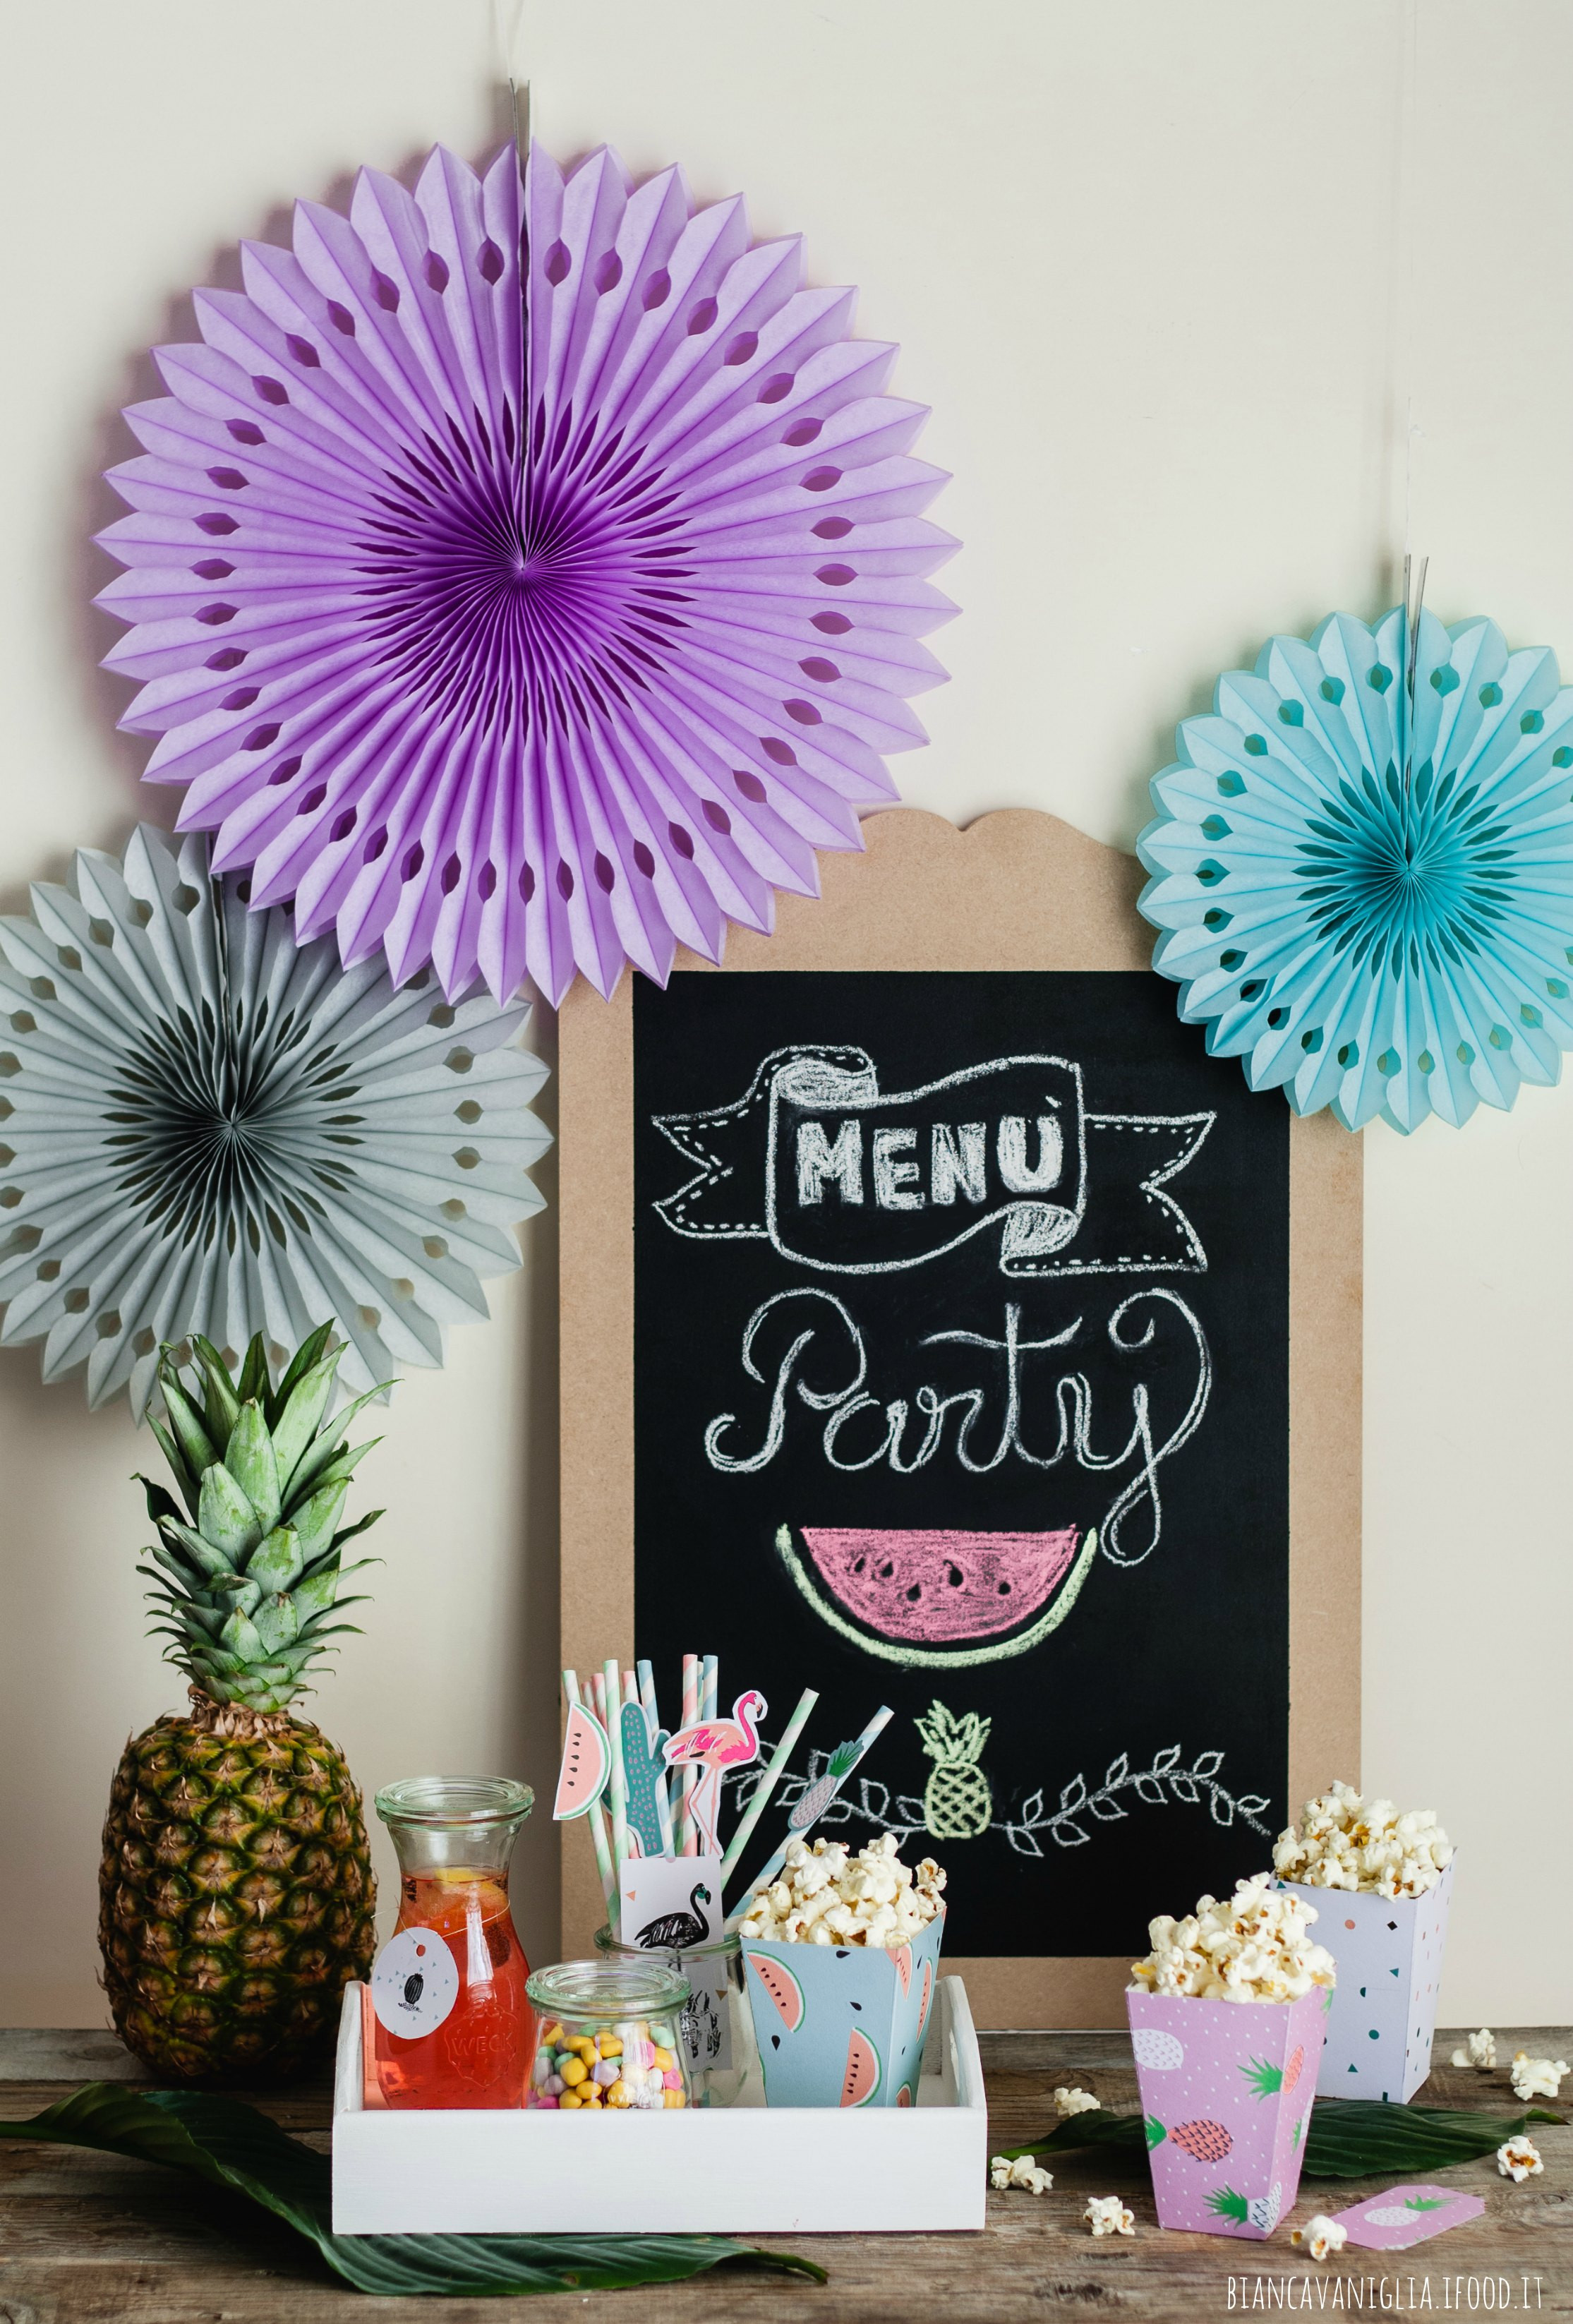 Decorazioni Fai Da Te Diy Party Idee Per Decorazioni Fai Da Te Tutorial